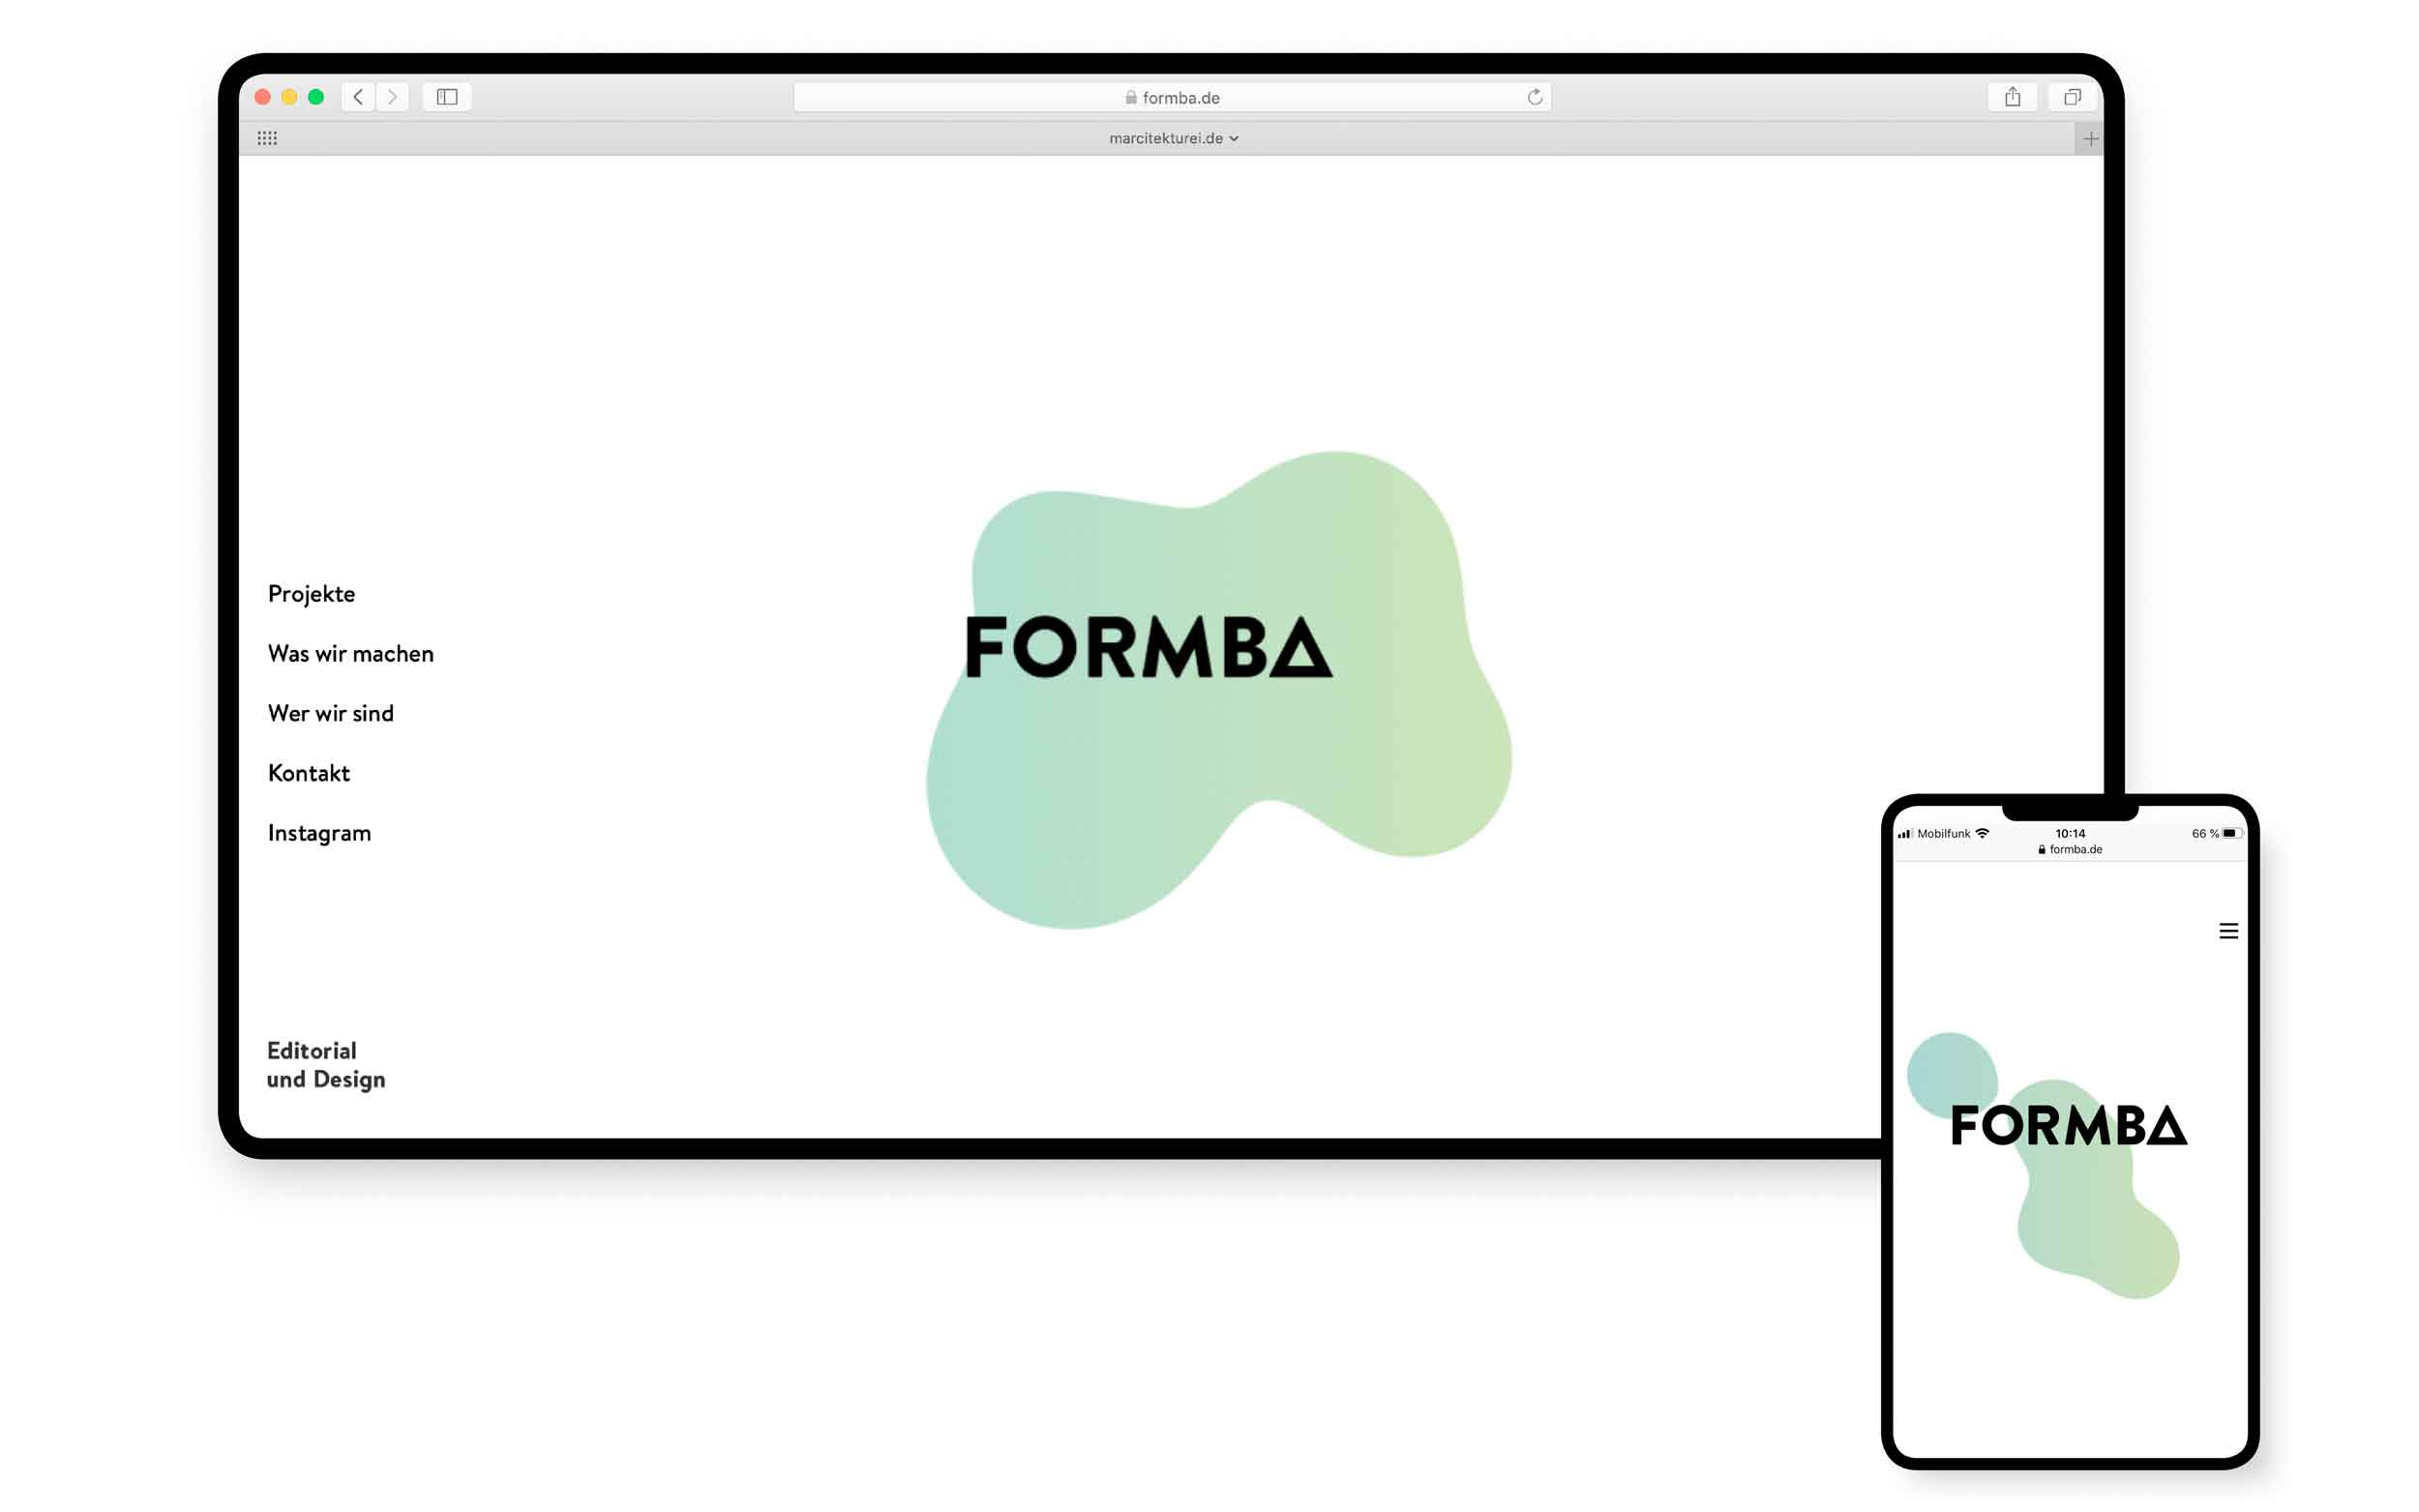 FORMBA | Editorial und Design